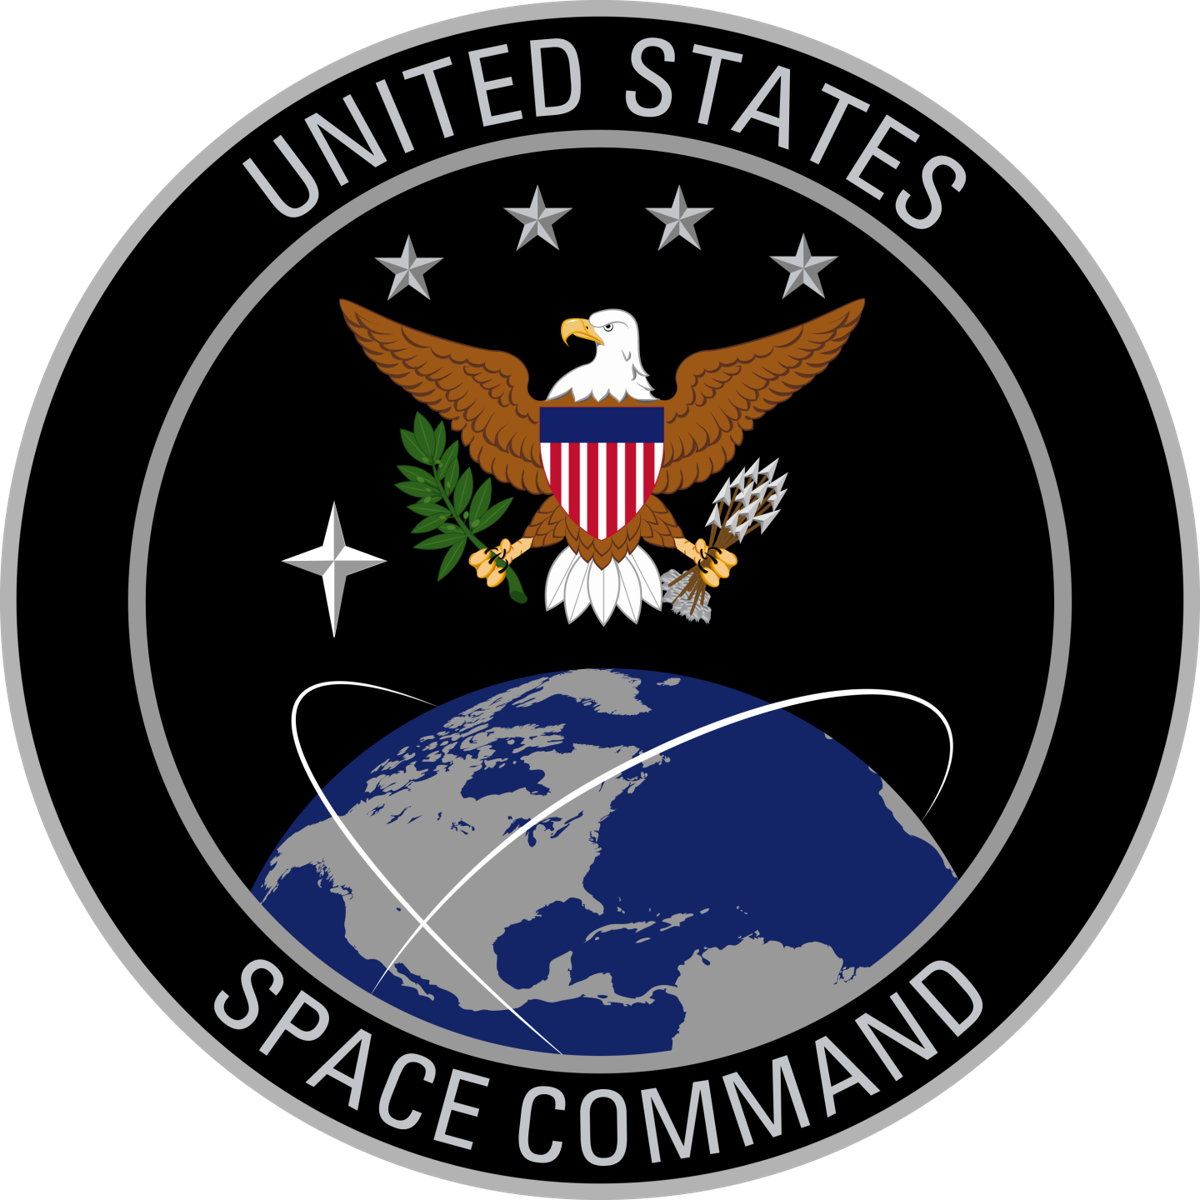 united states space command logo png #41289